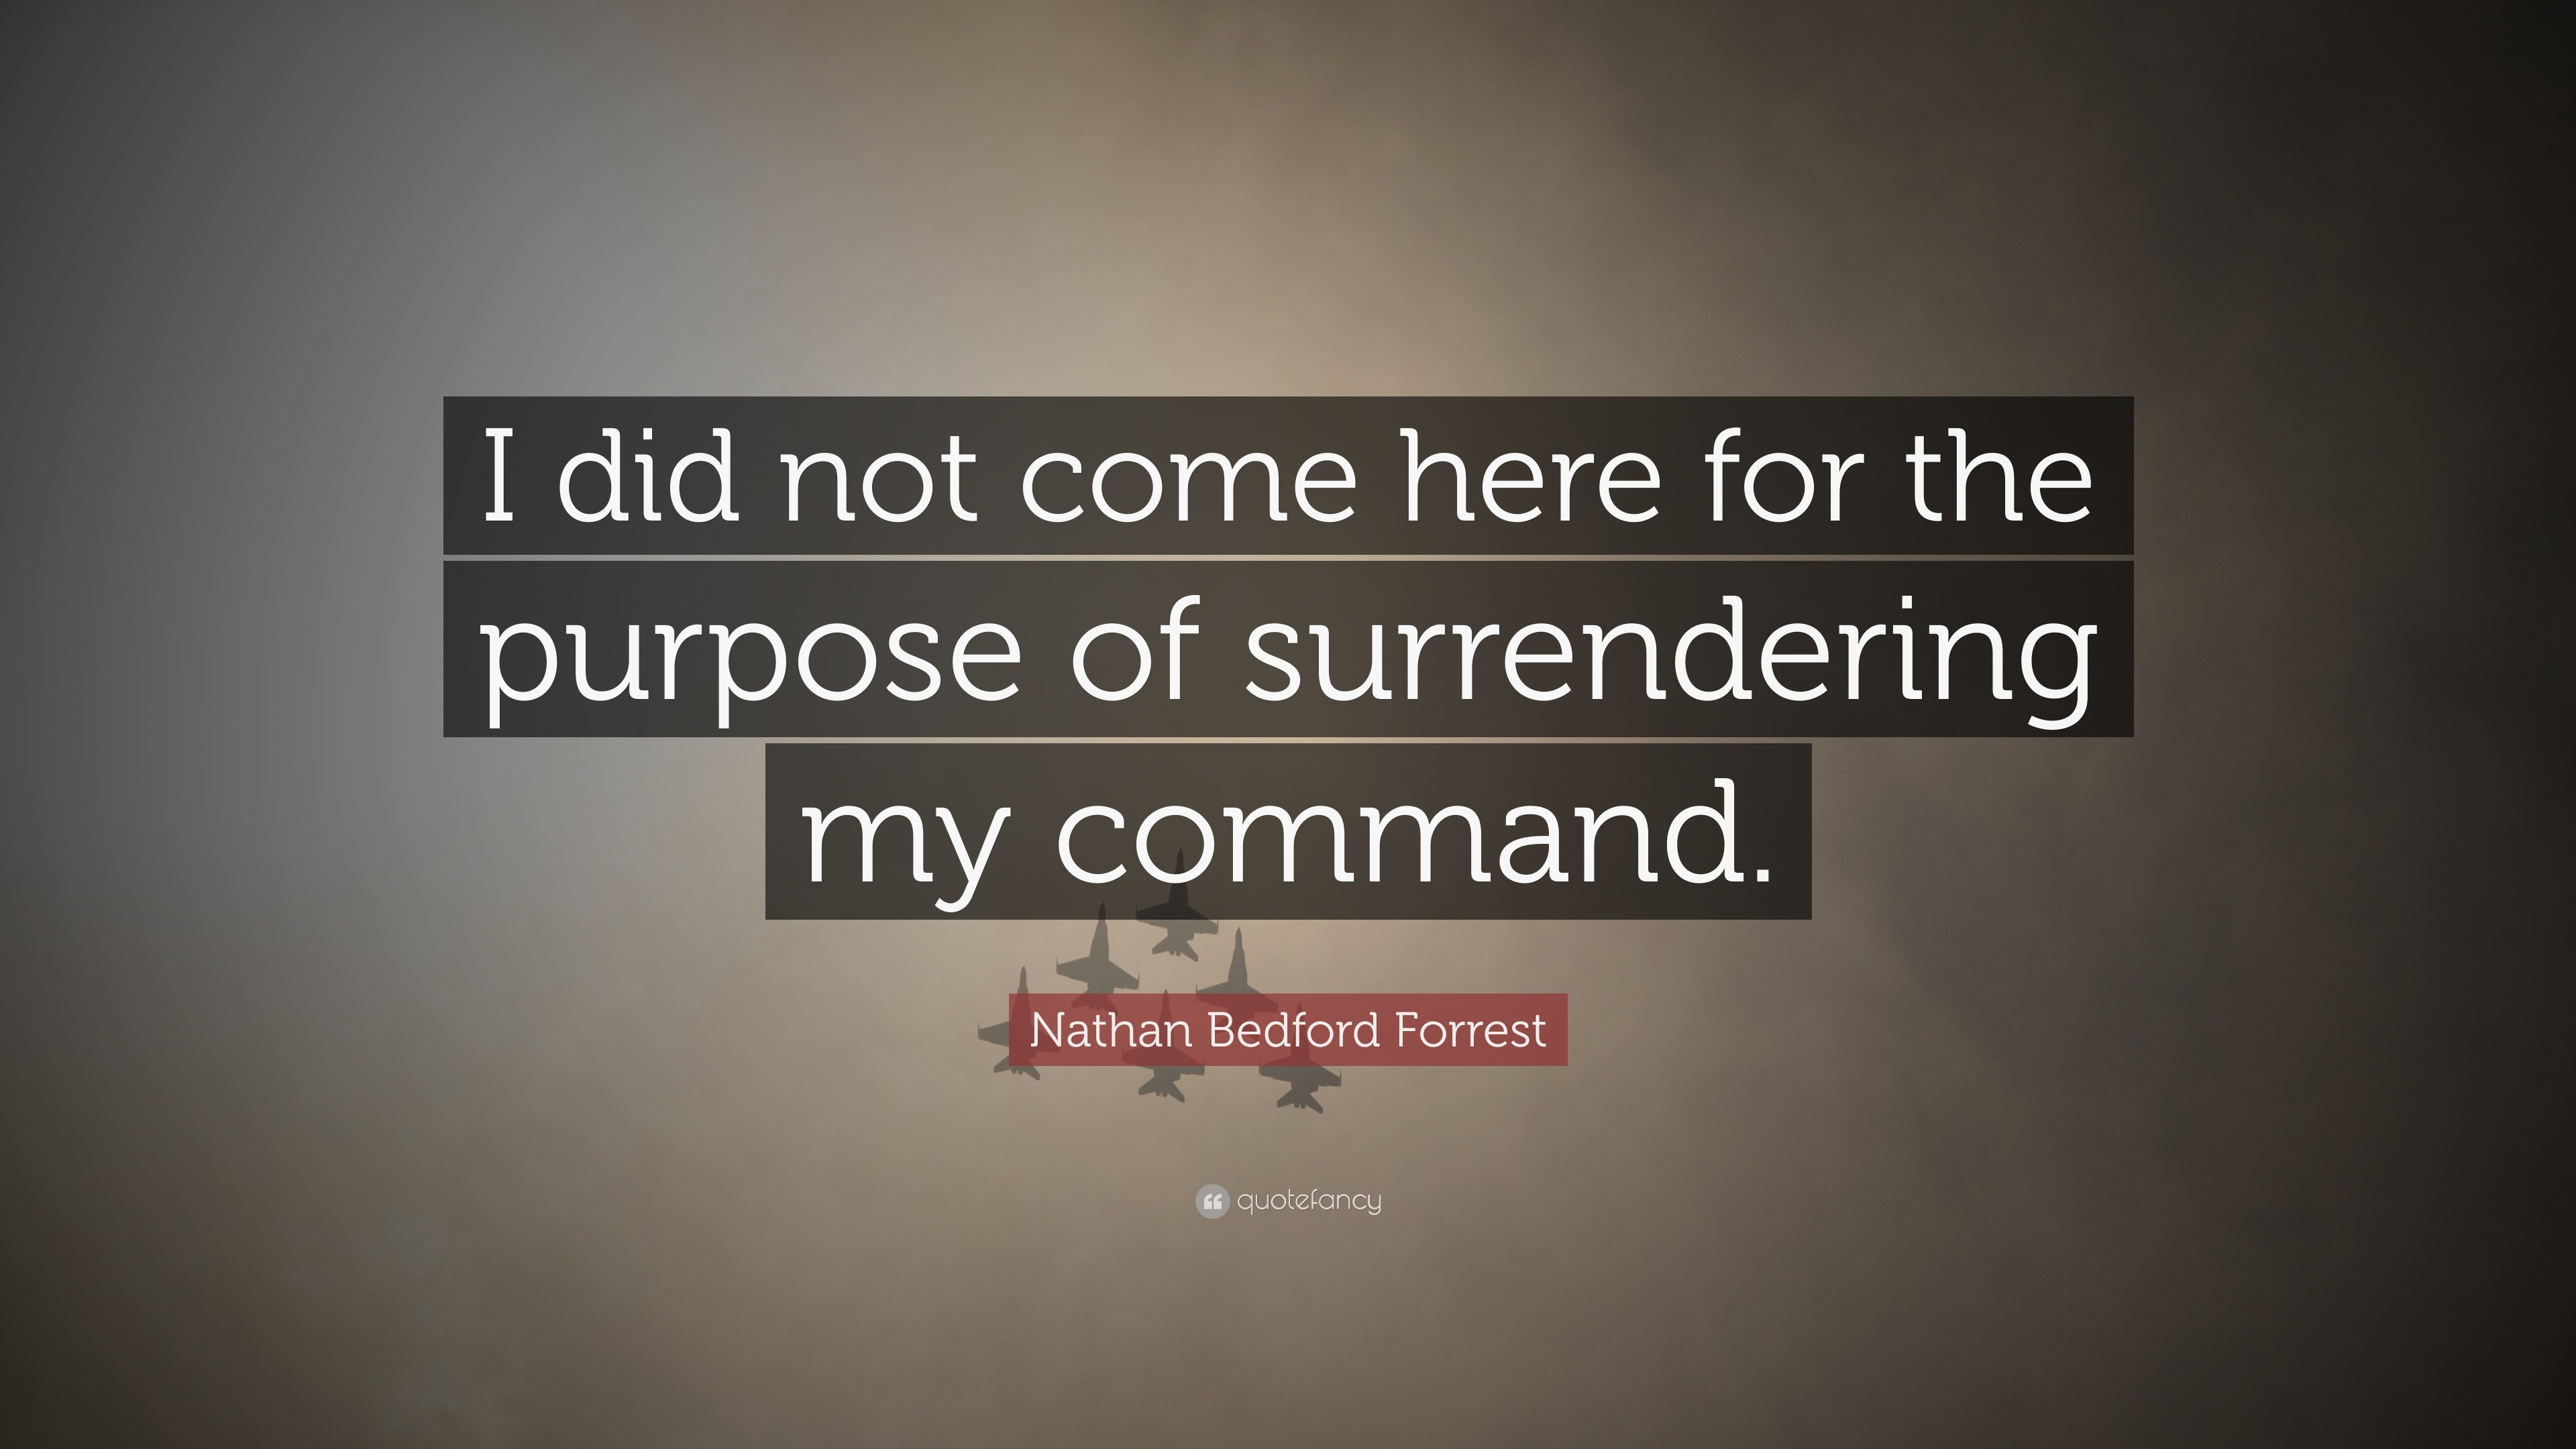 Nathan Bedford Forrest Quotes | Nathan Bedford Forrest Quote I Did Not Come Here For The Purpose